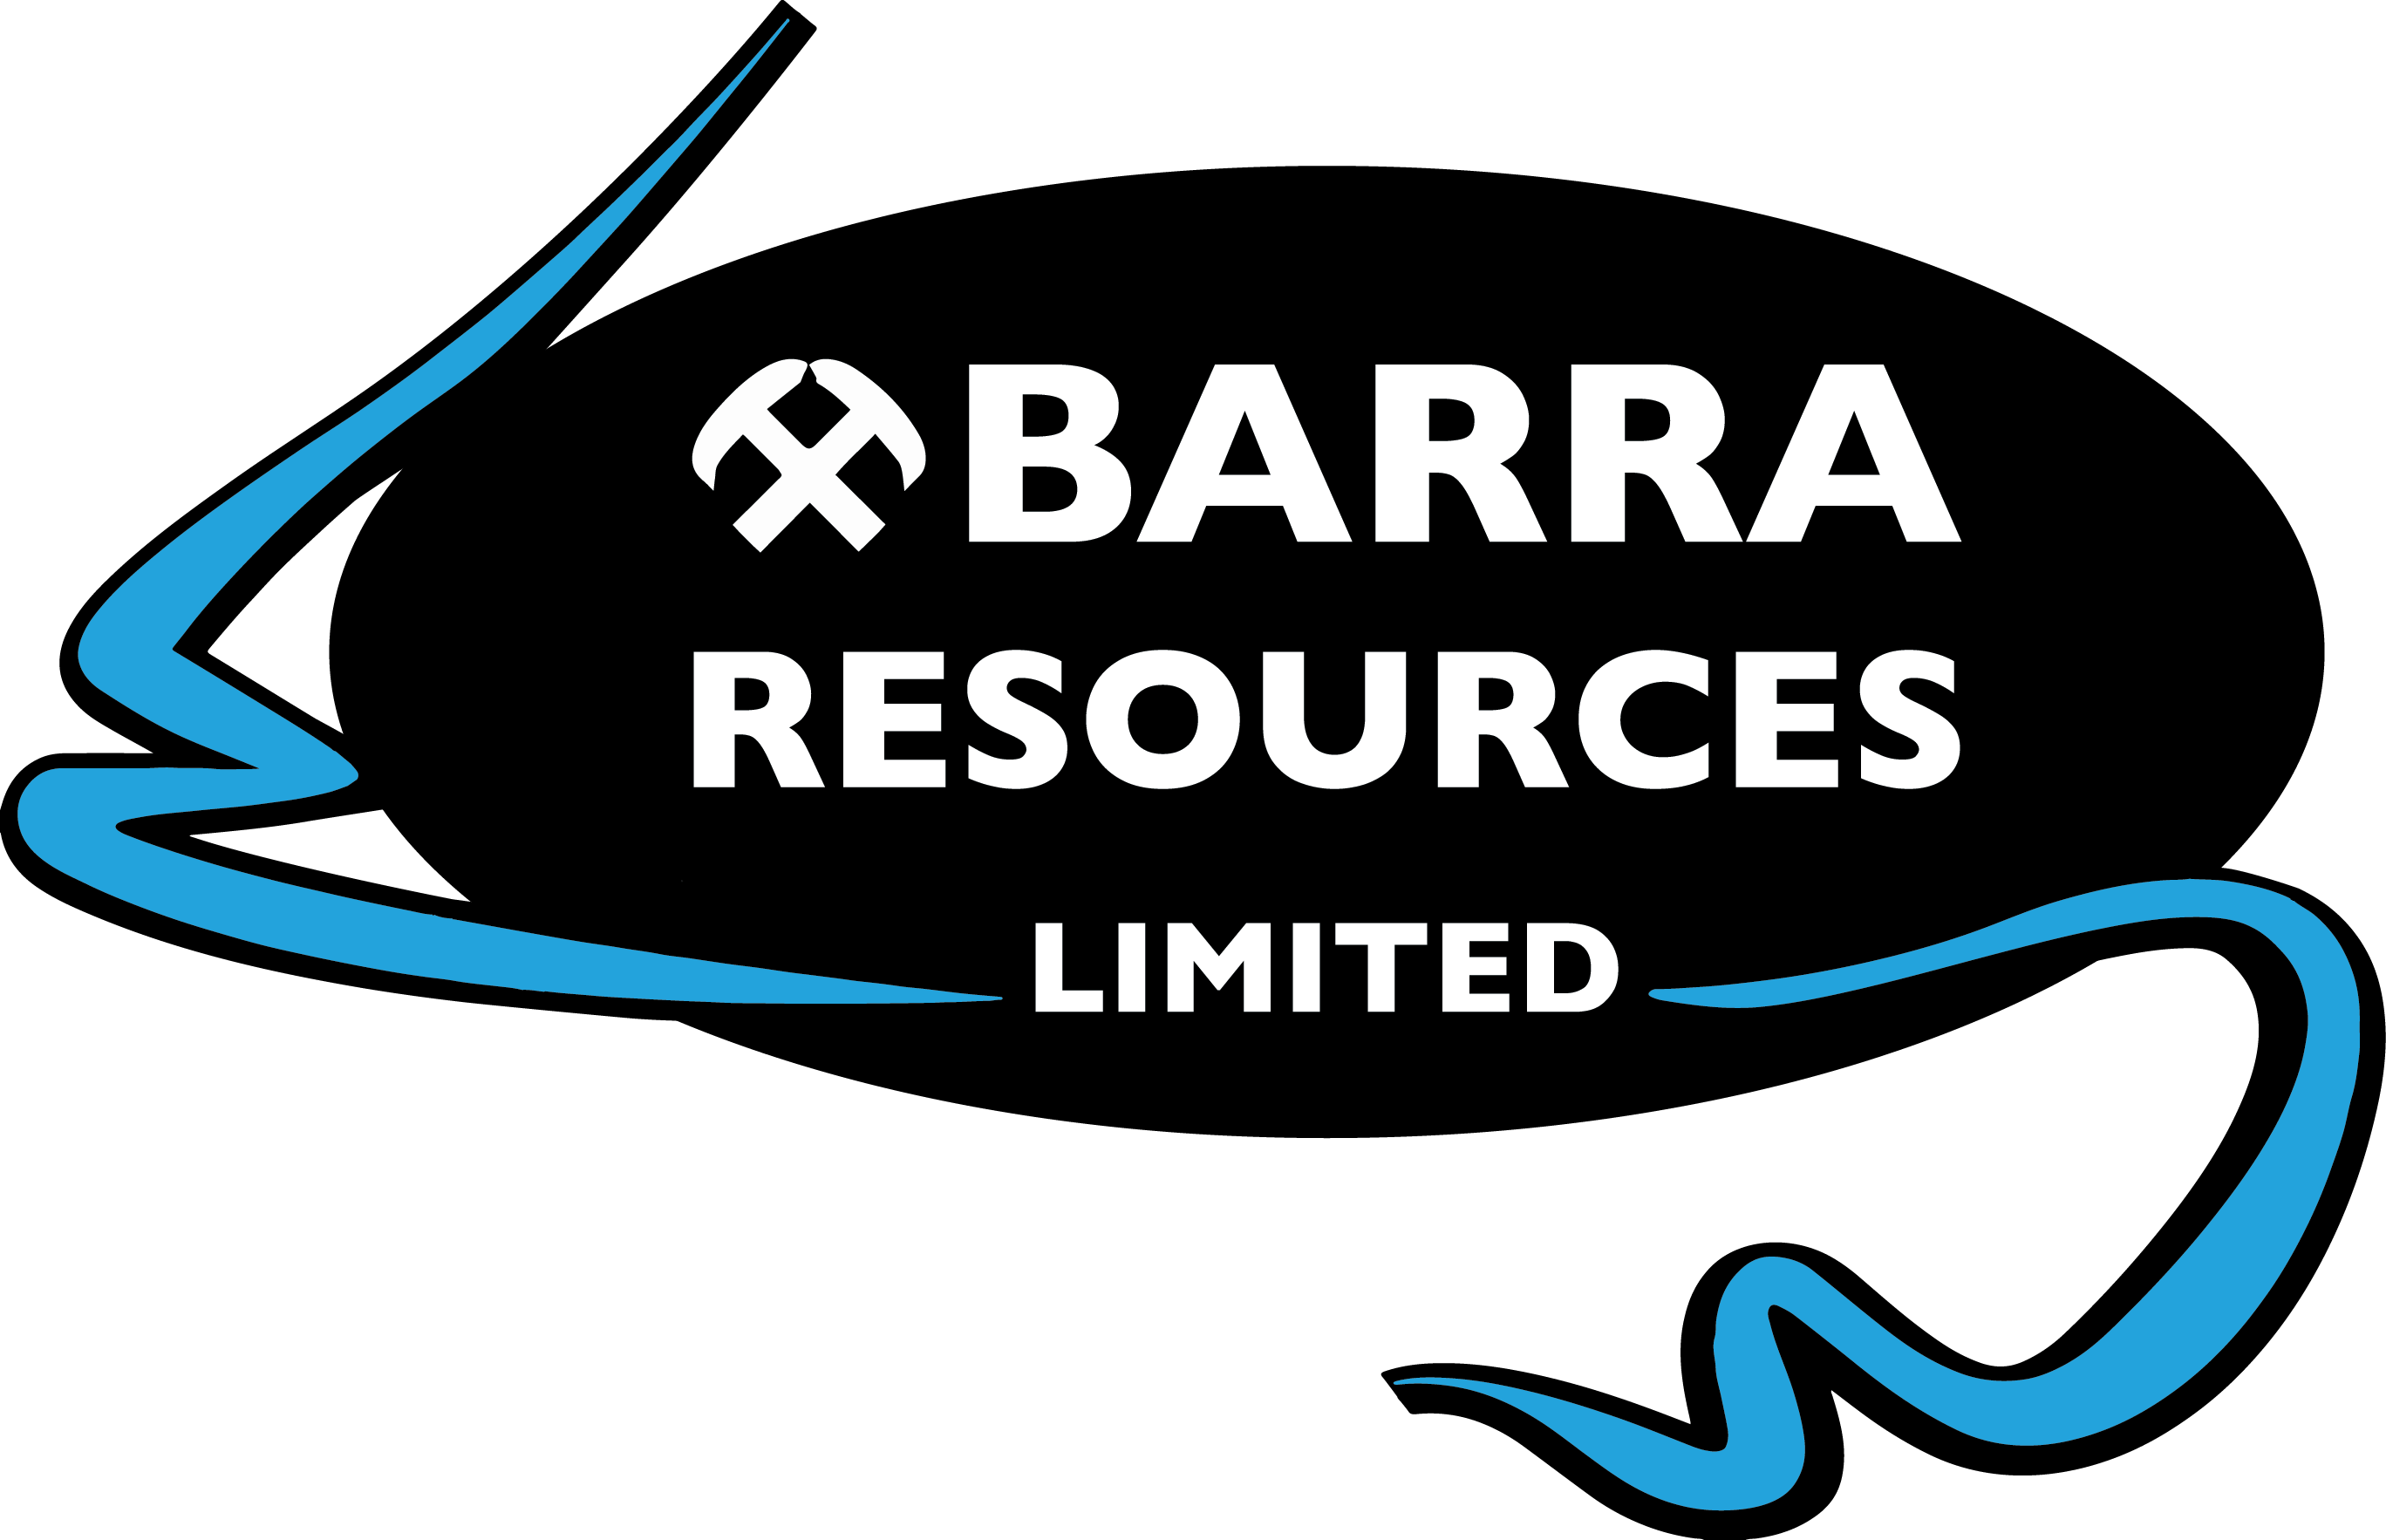 jpg black and white download Barra resources gold cobalt. Price clipart capital resource.